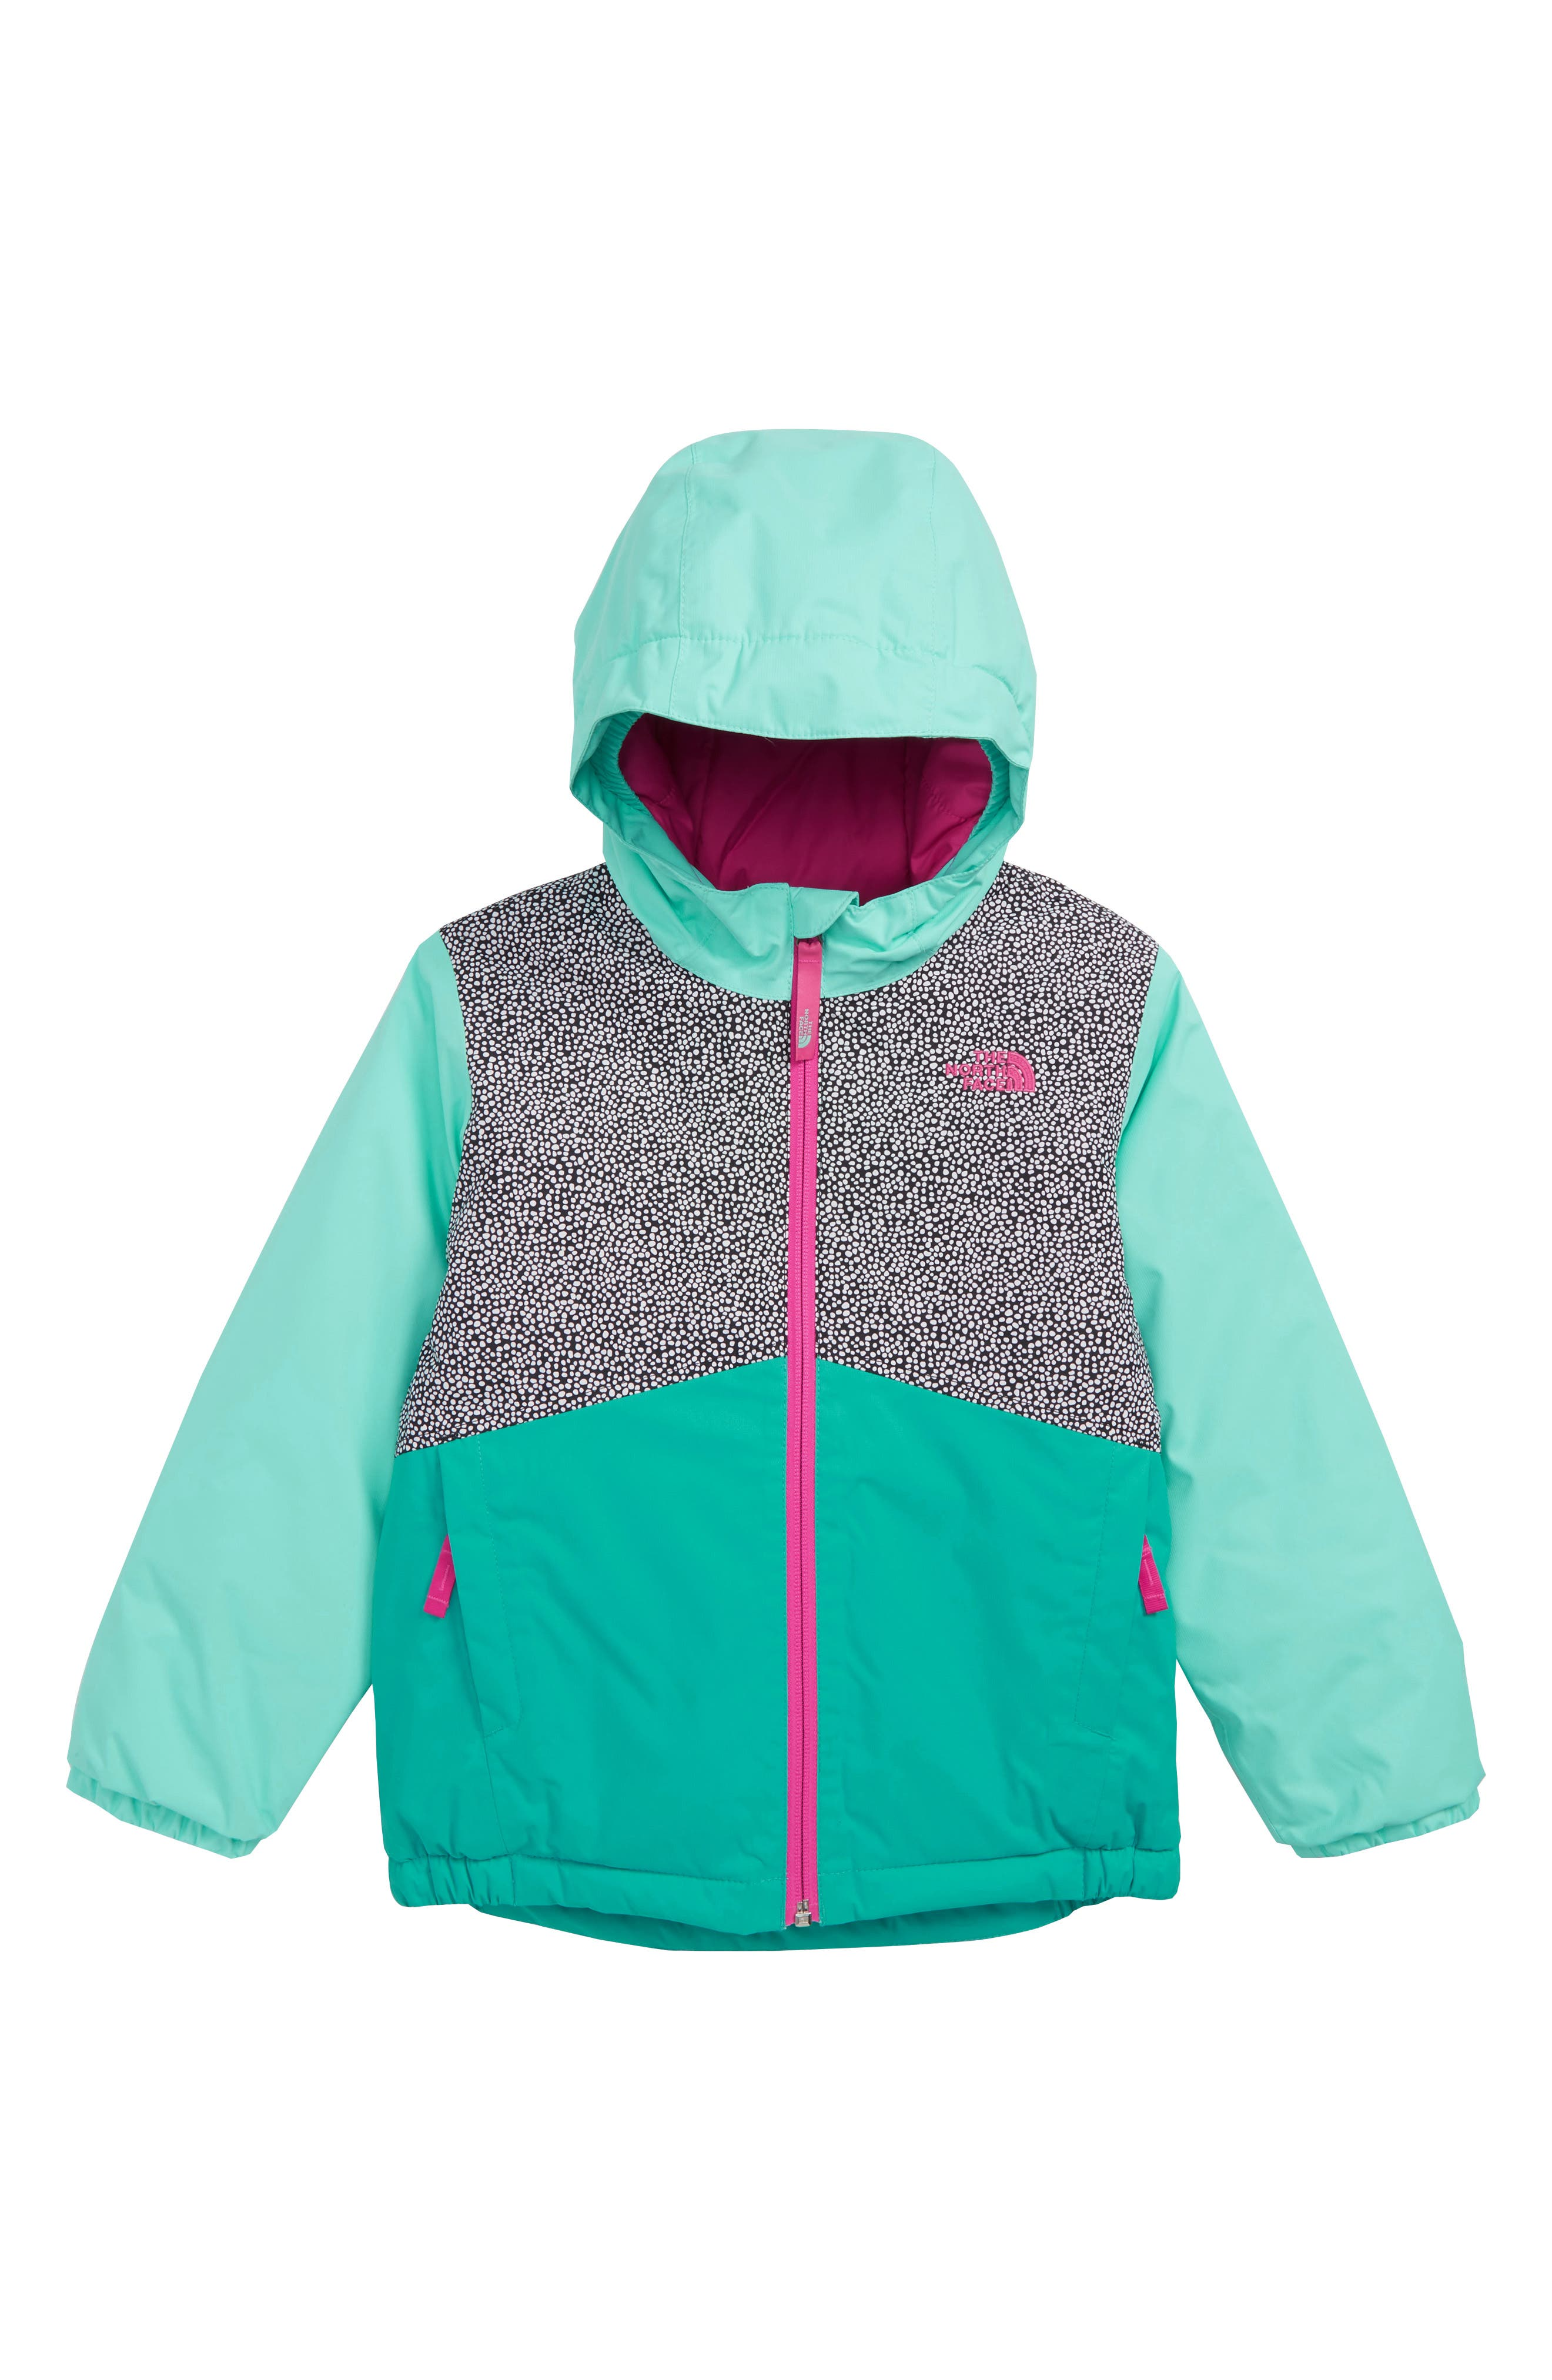 Snowquest Waterproof Insulated Winter Jacket,                         Main,                         color, TNF WHITE MINI DOT PRINT